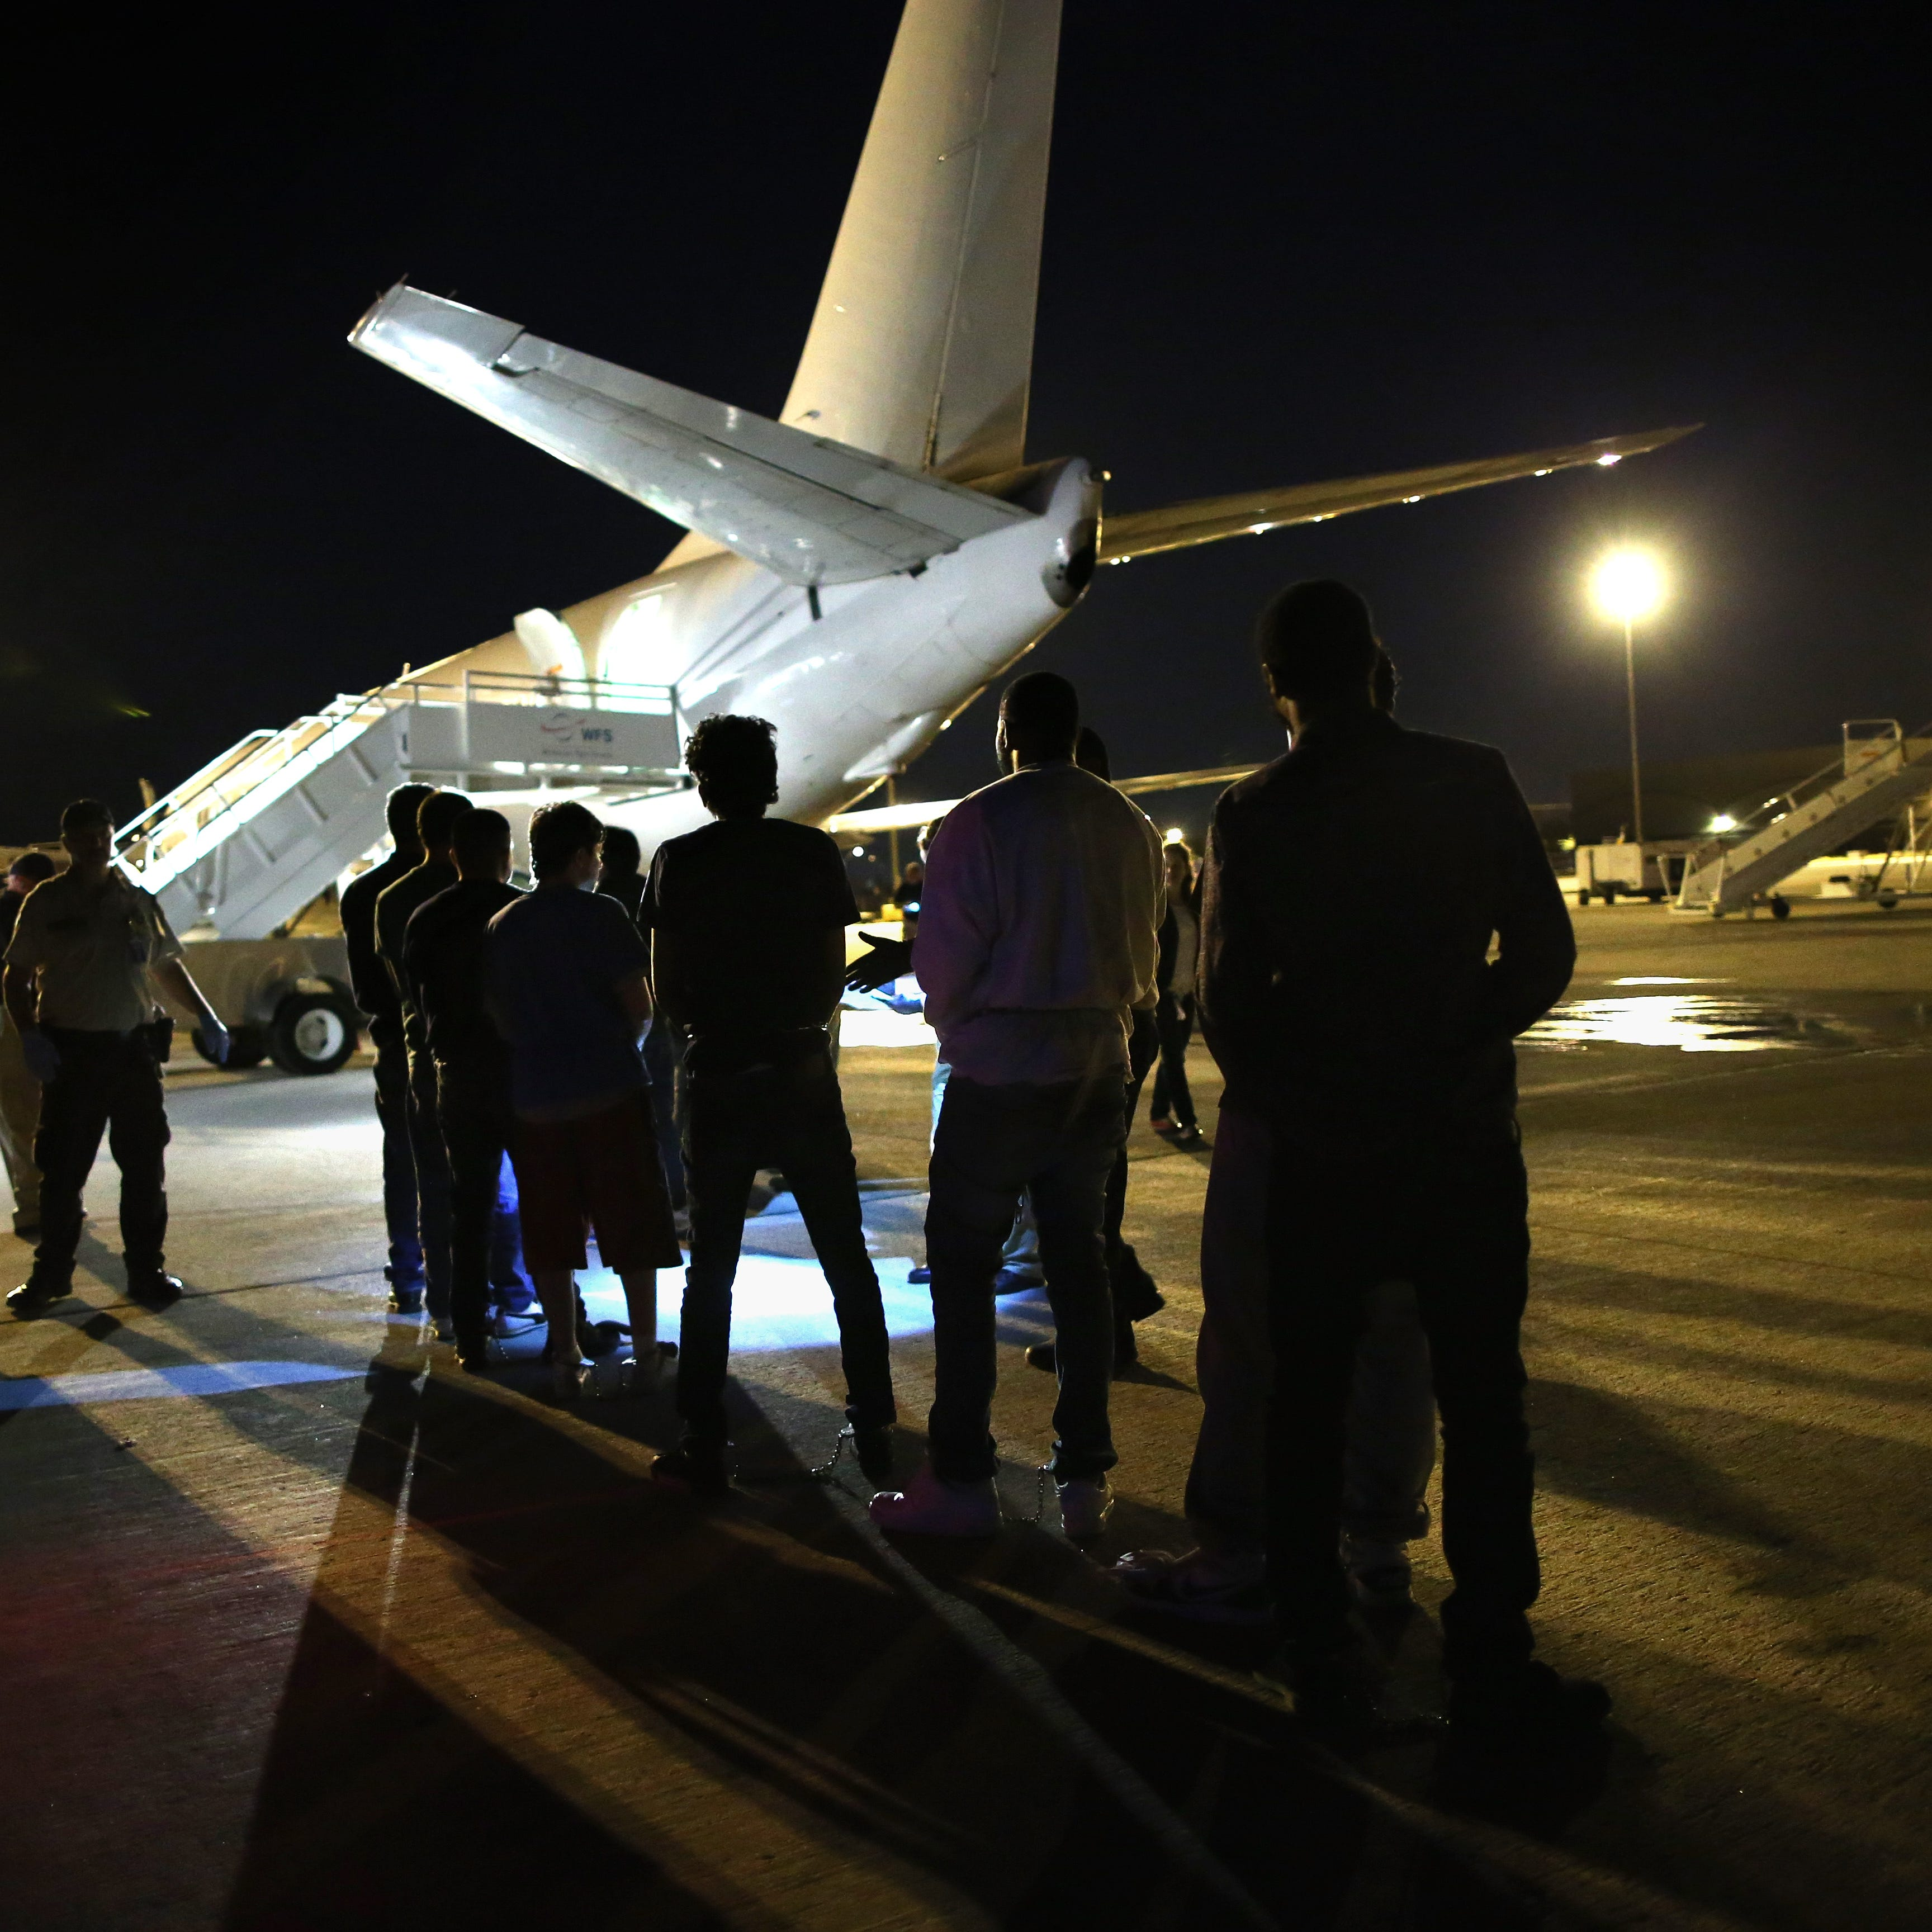 Undocumented immigrants wait to be loaded onto an Immigration and Customs Enforcement charter jet early on October 15, 2015, in Mesa, Ariz.